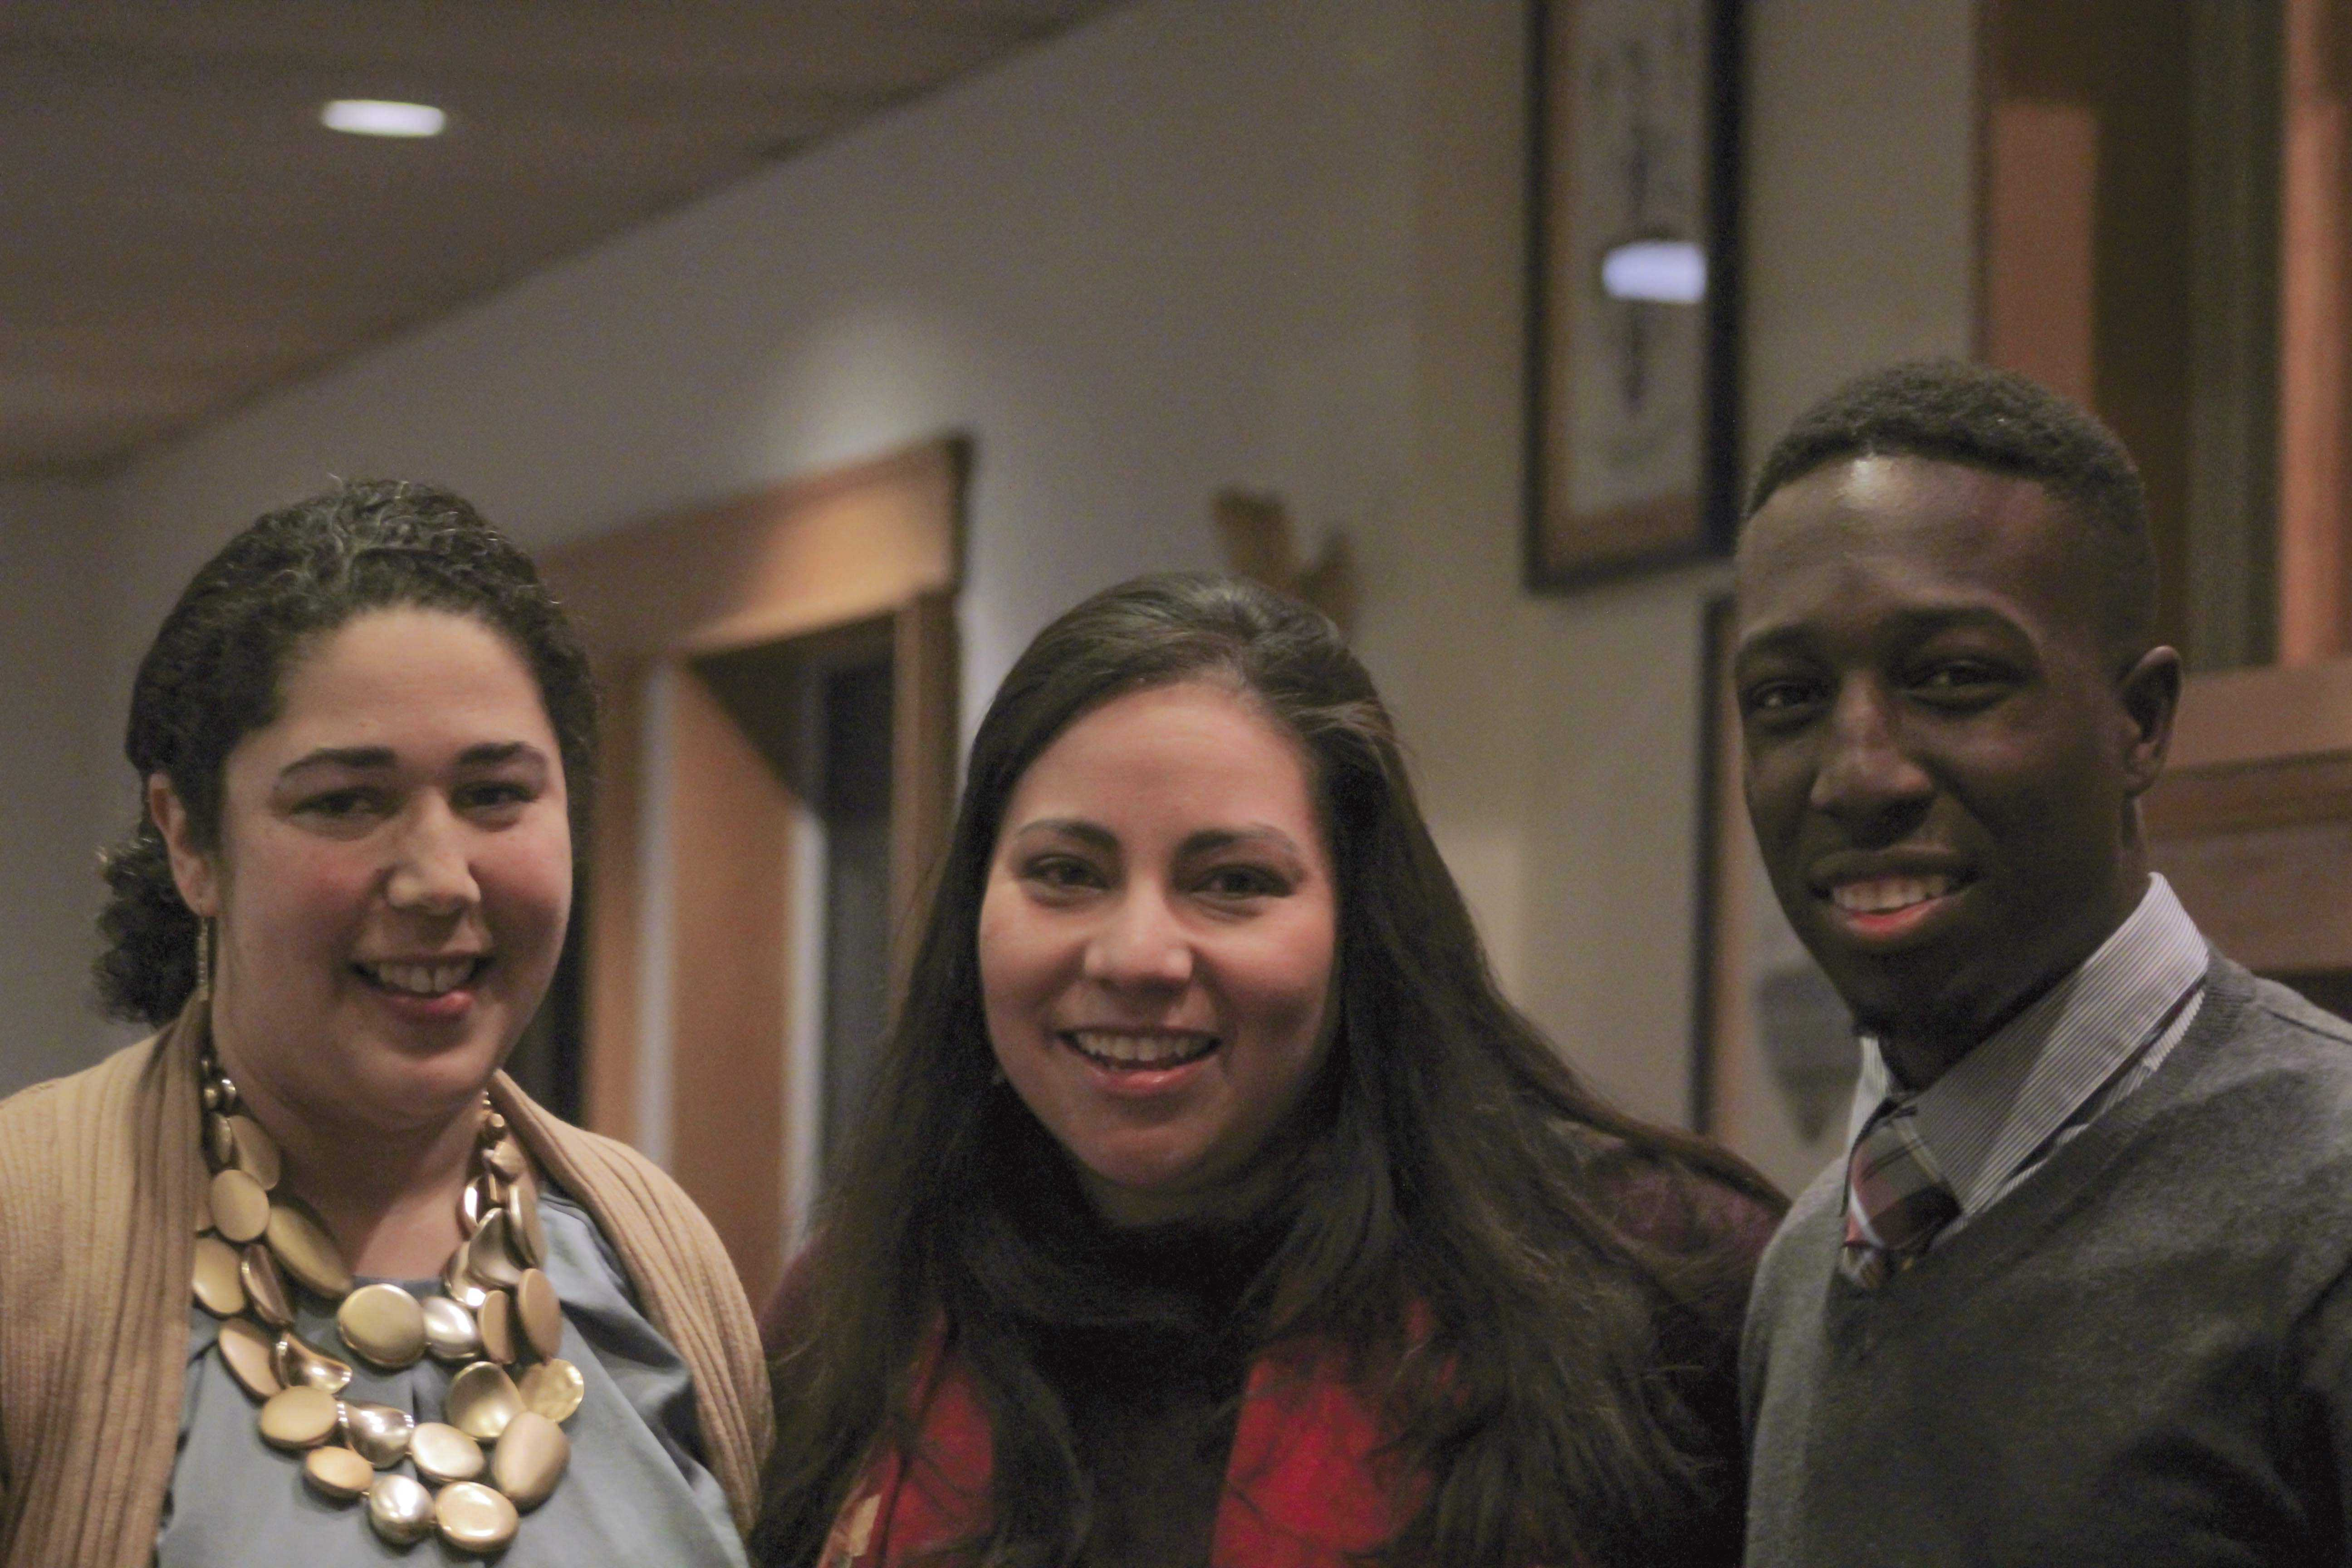 Linda Rey (center) presents Social Justice Award to Stokes '17 (right) and Professor Brady '99 (left).